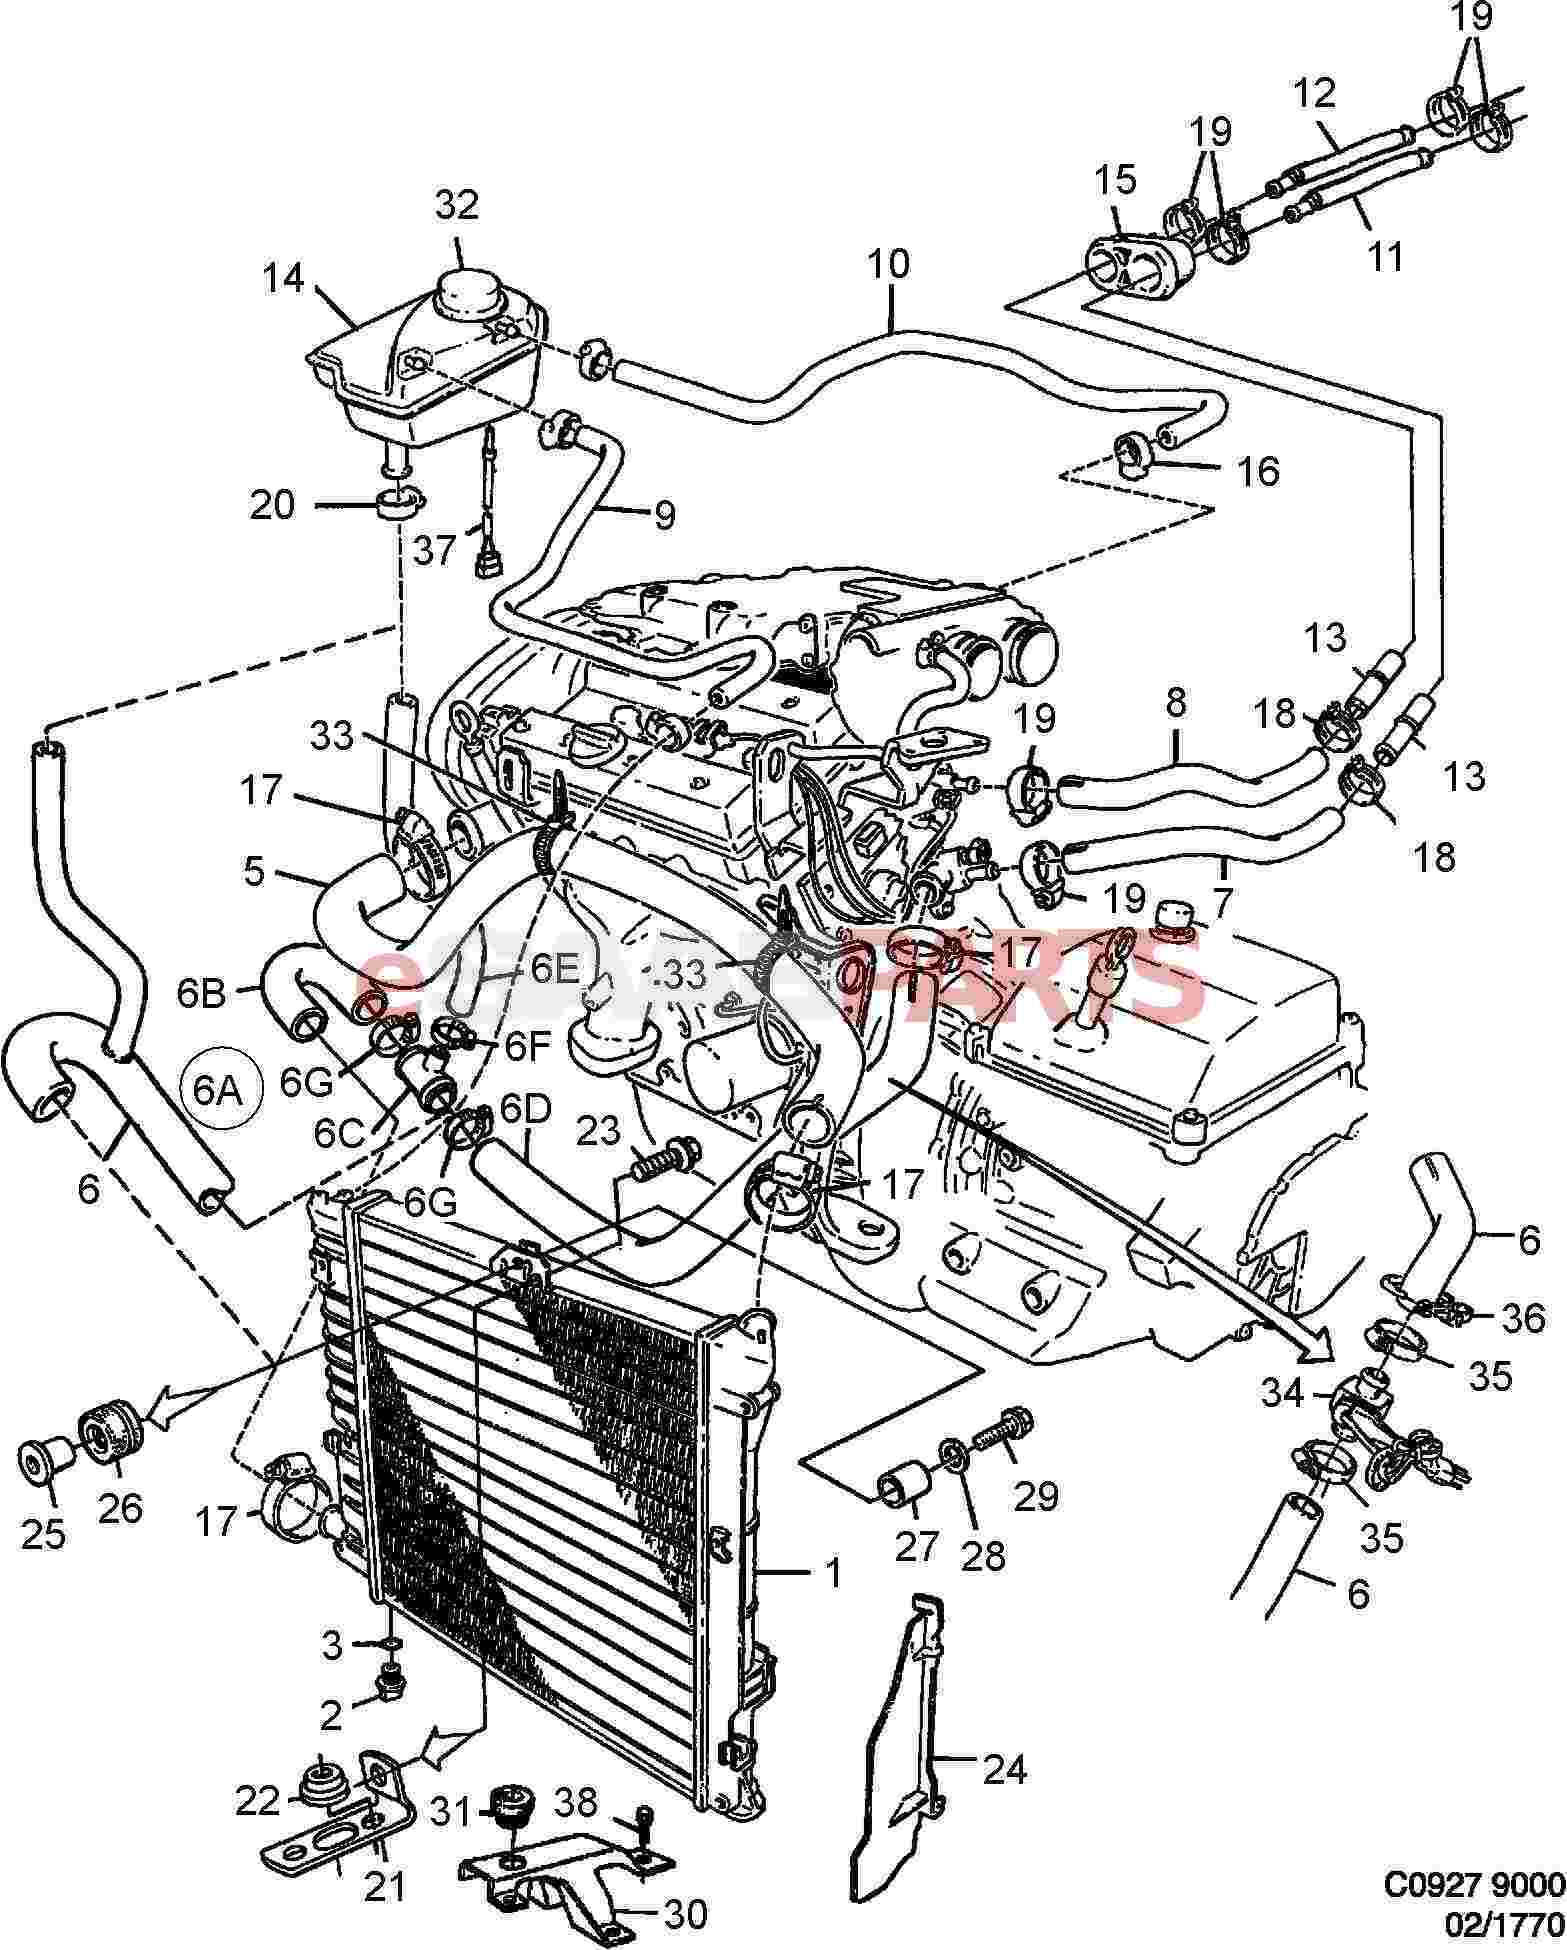 2004 Saab 2 0 Engine Diagram • Wiring Diagram For Free